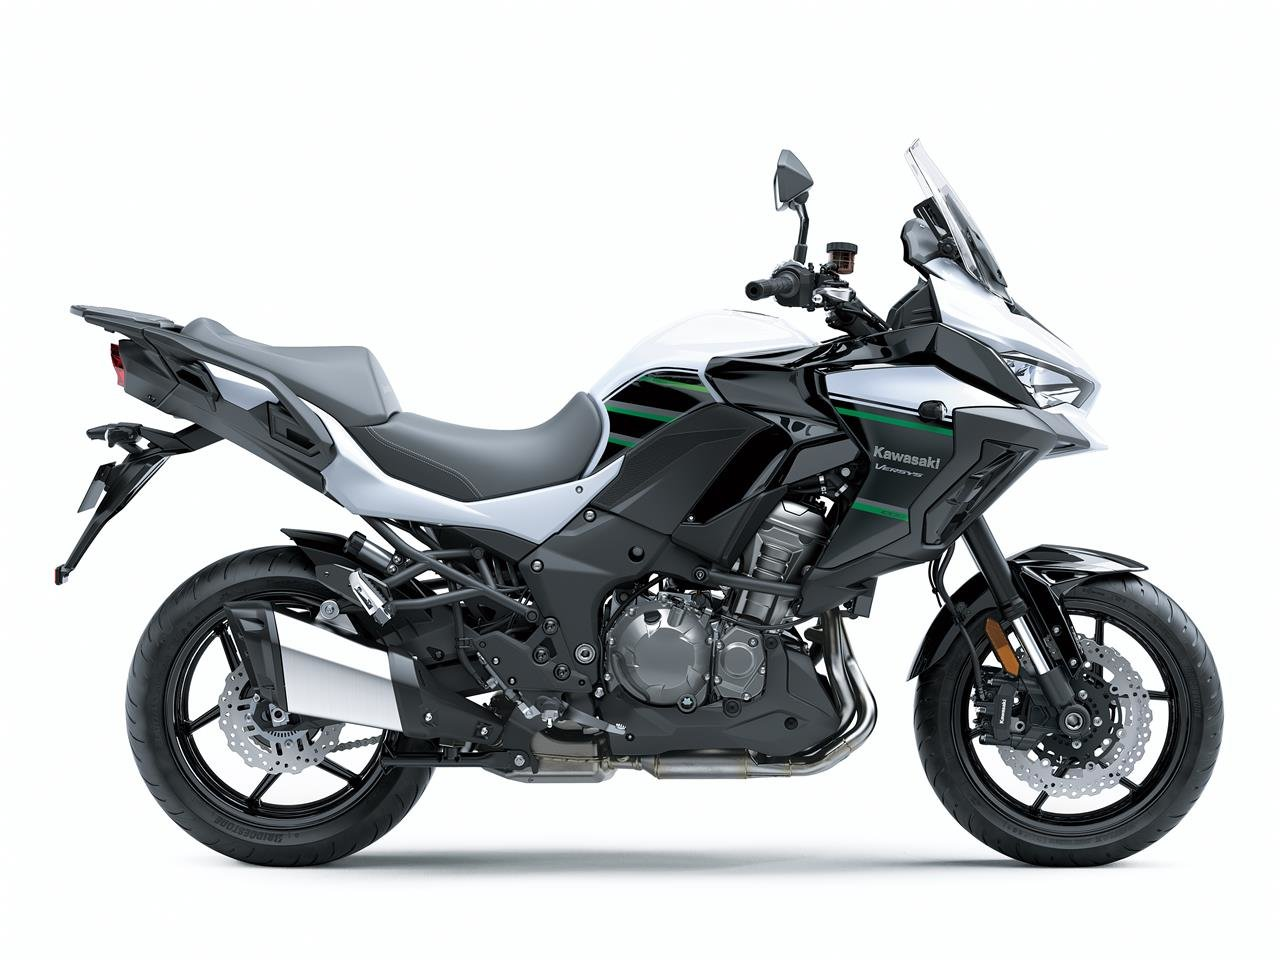 New 2020 Kawasaki Versys 1000**£700 PAID & FREE Delivery* For Sale (picture 2 of 6)